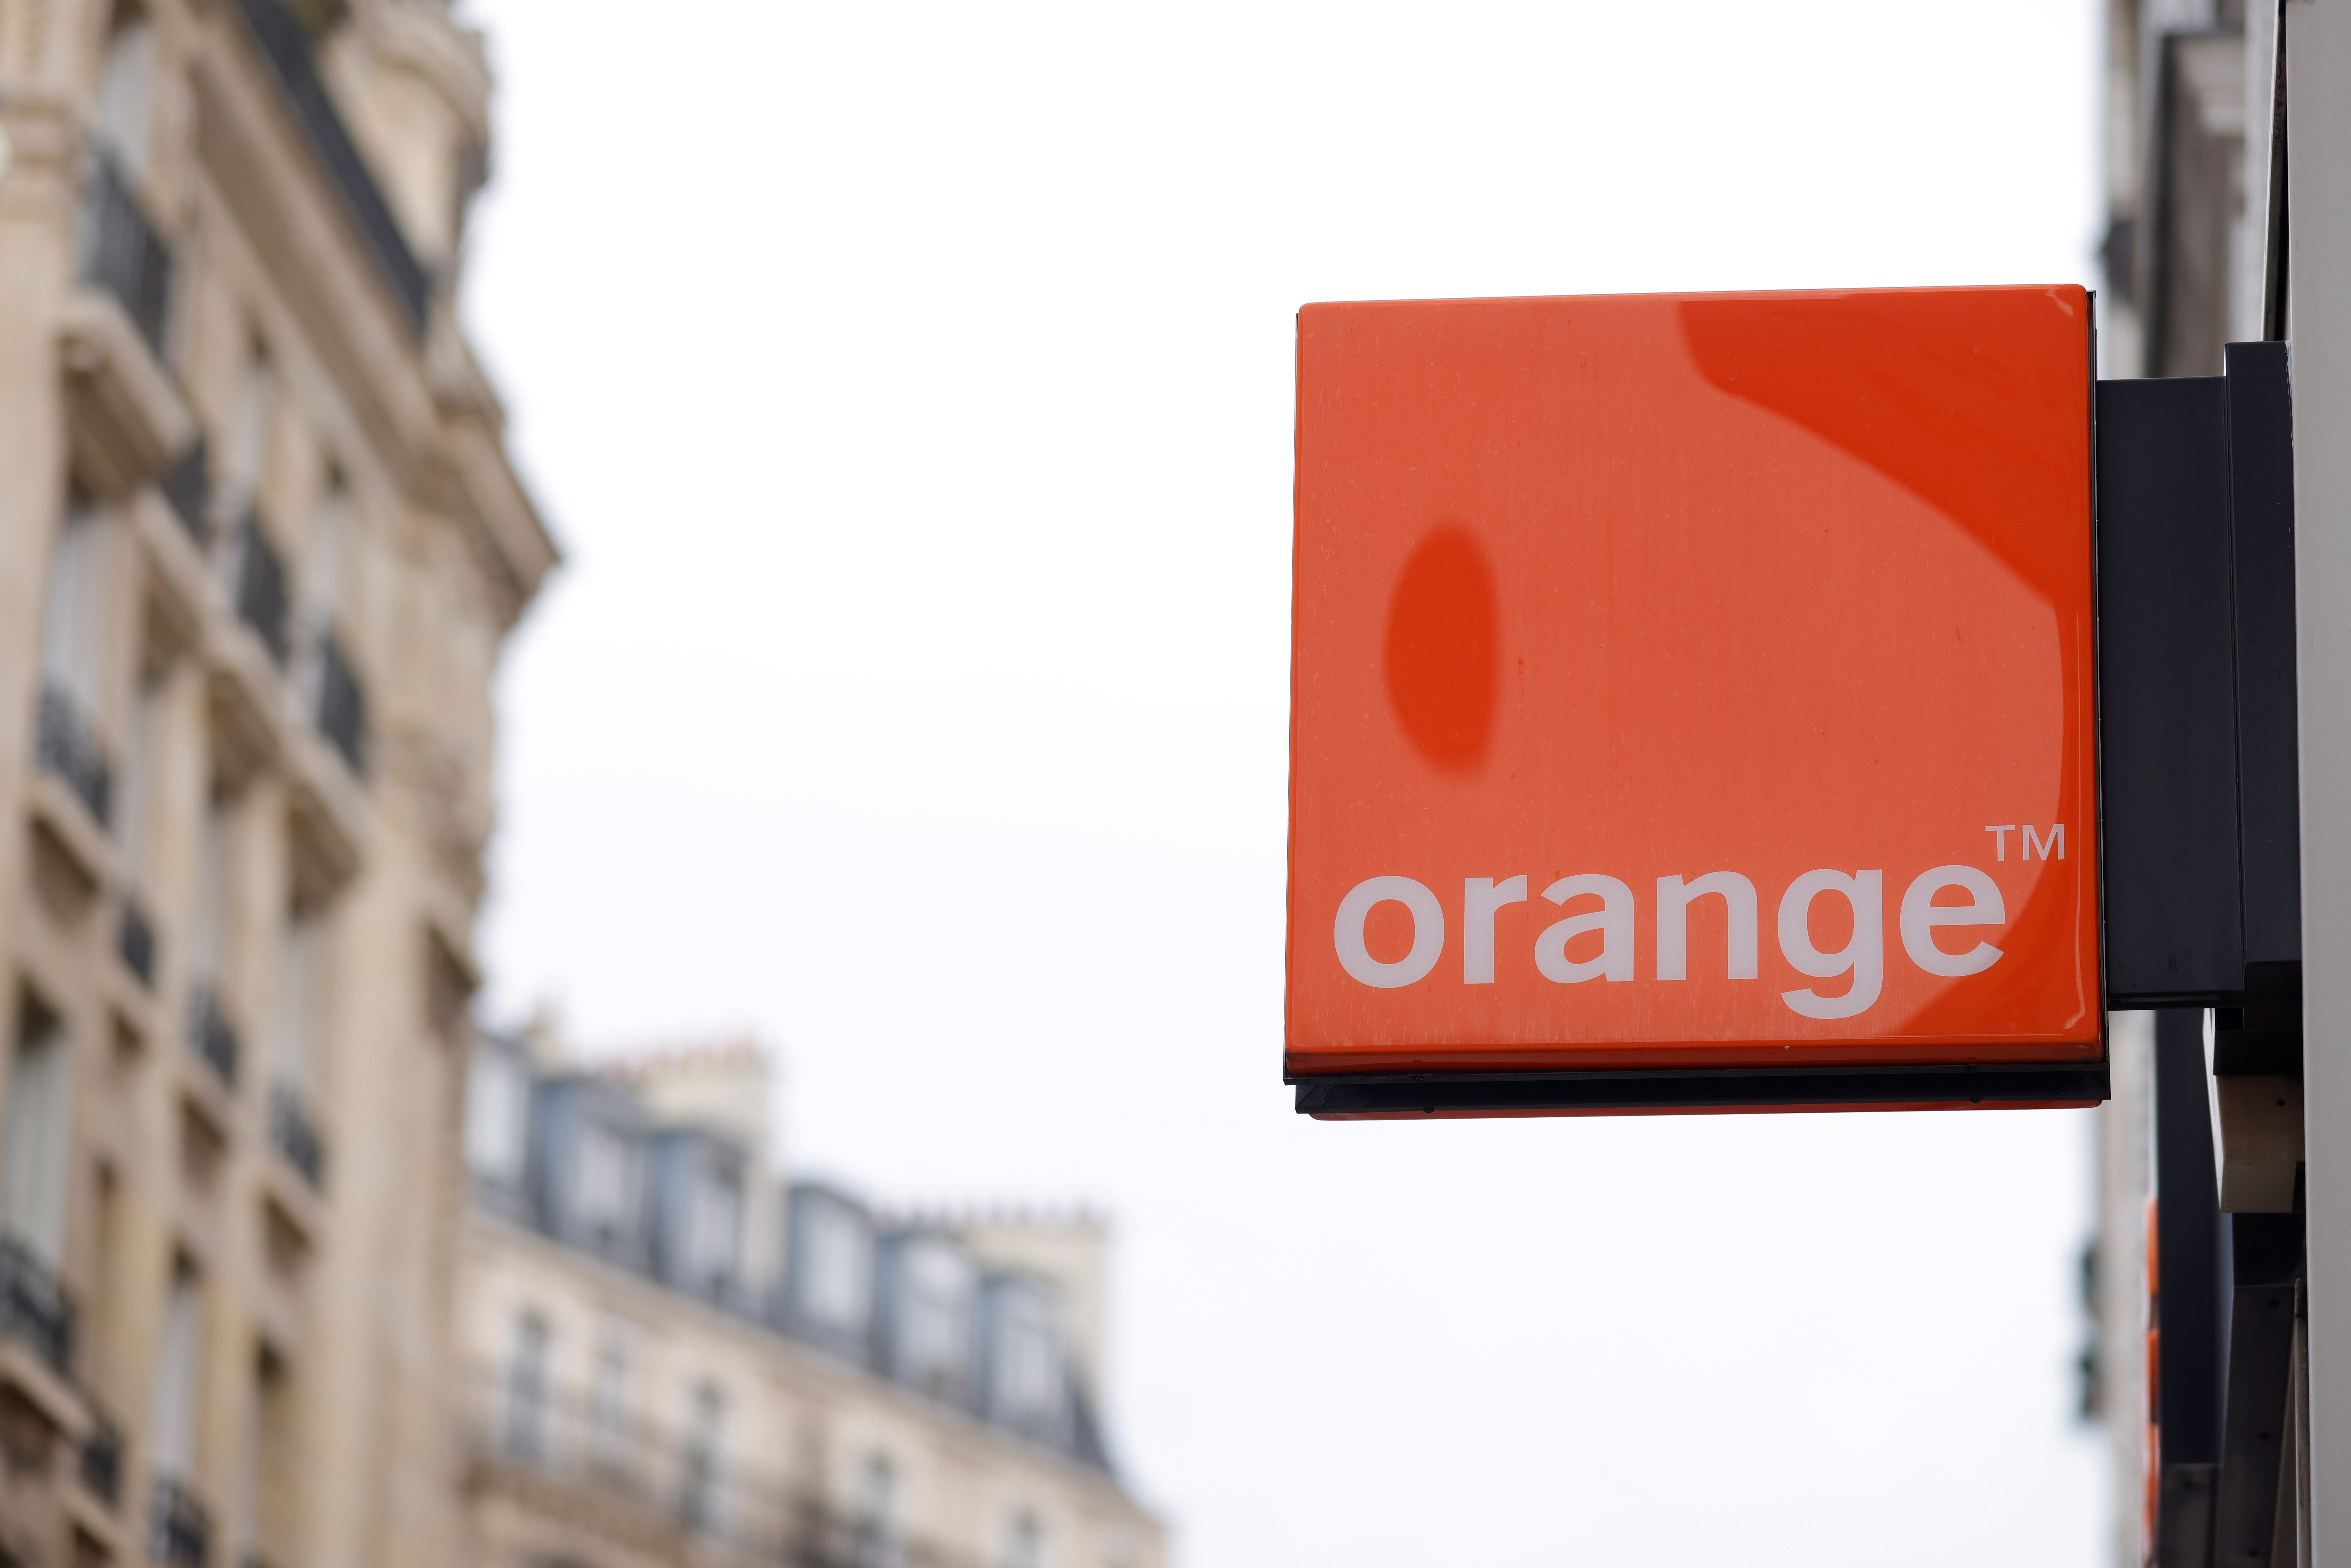 The logo of French telecoms operator Orange is seen on the facade of a store in Paris, France, February 16, 2021. REUTERS/Sarah Meyssonnier